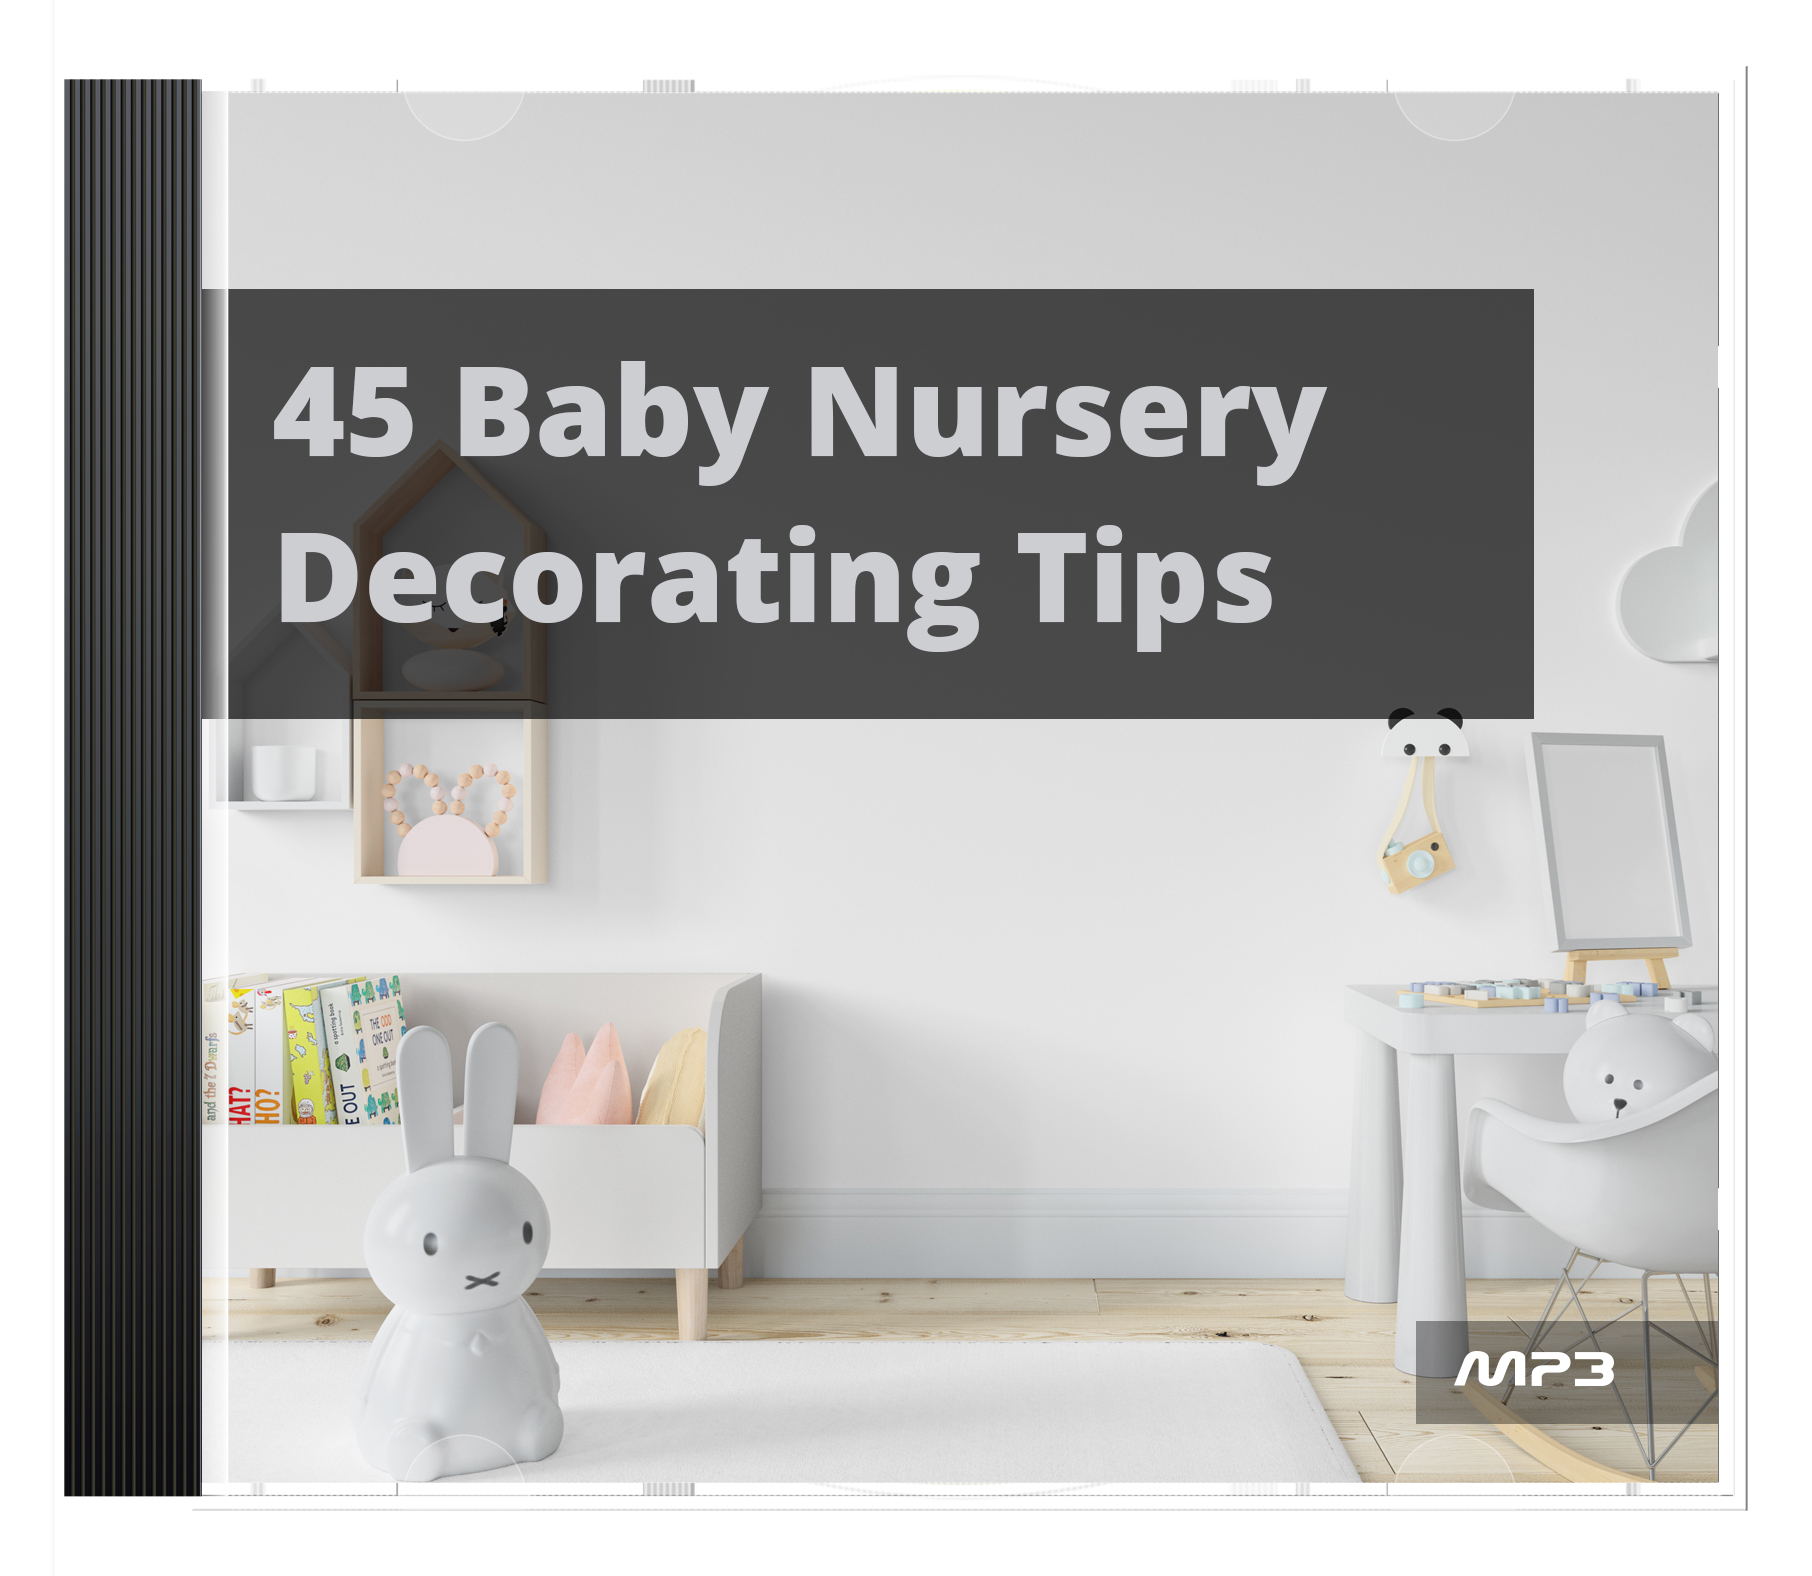 45 Baby Nursery Decorating Tips's Ebook Image